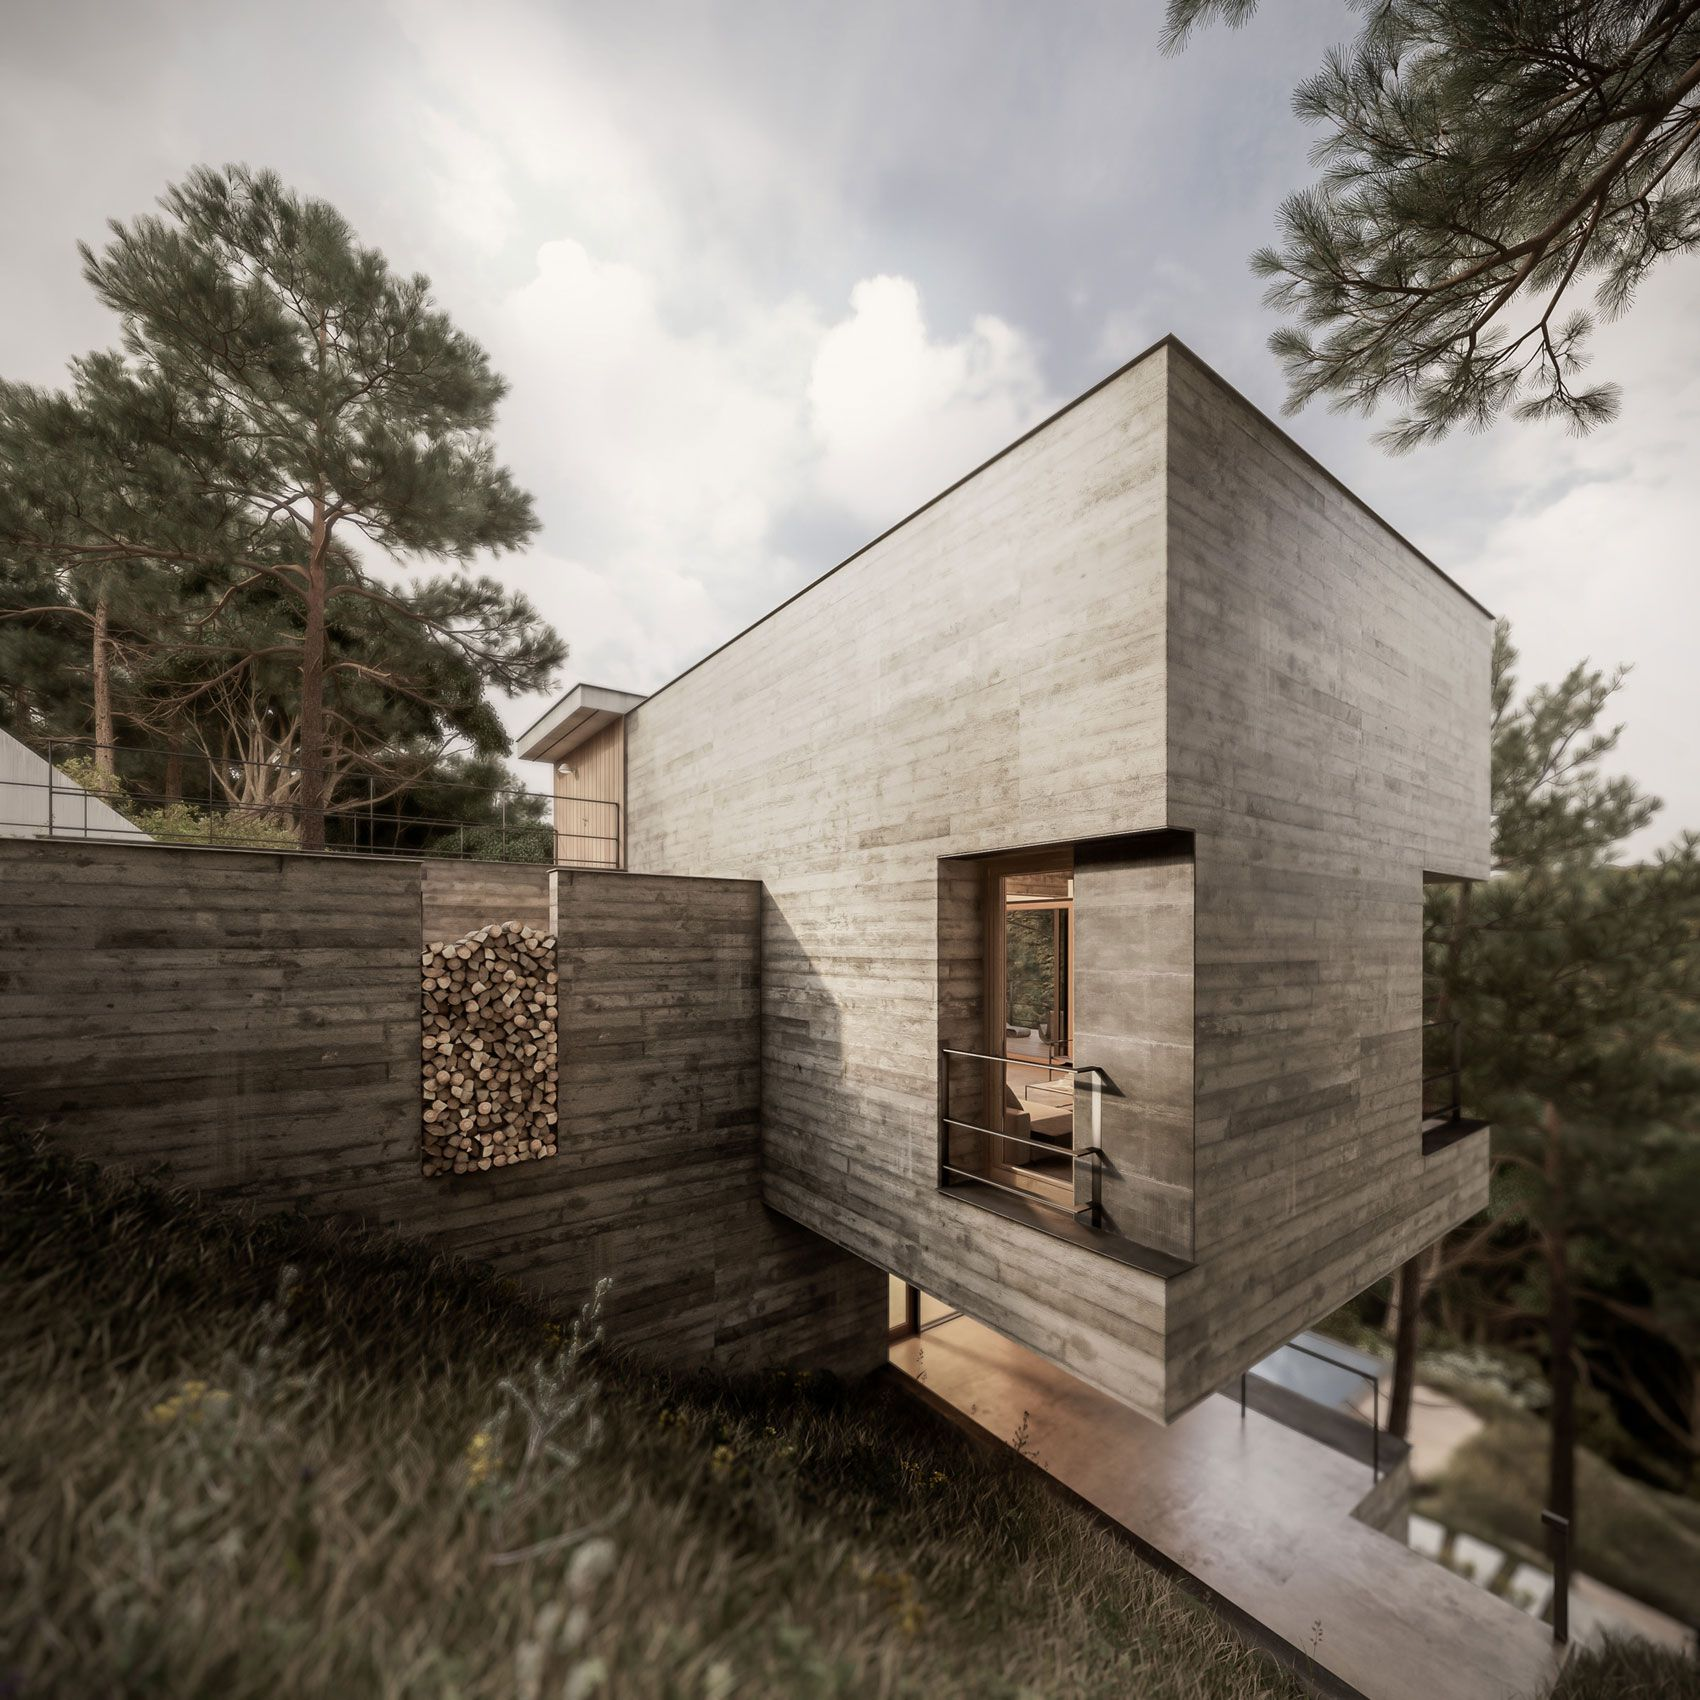 House-in-Nature-02